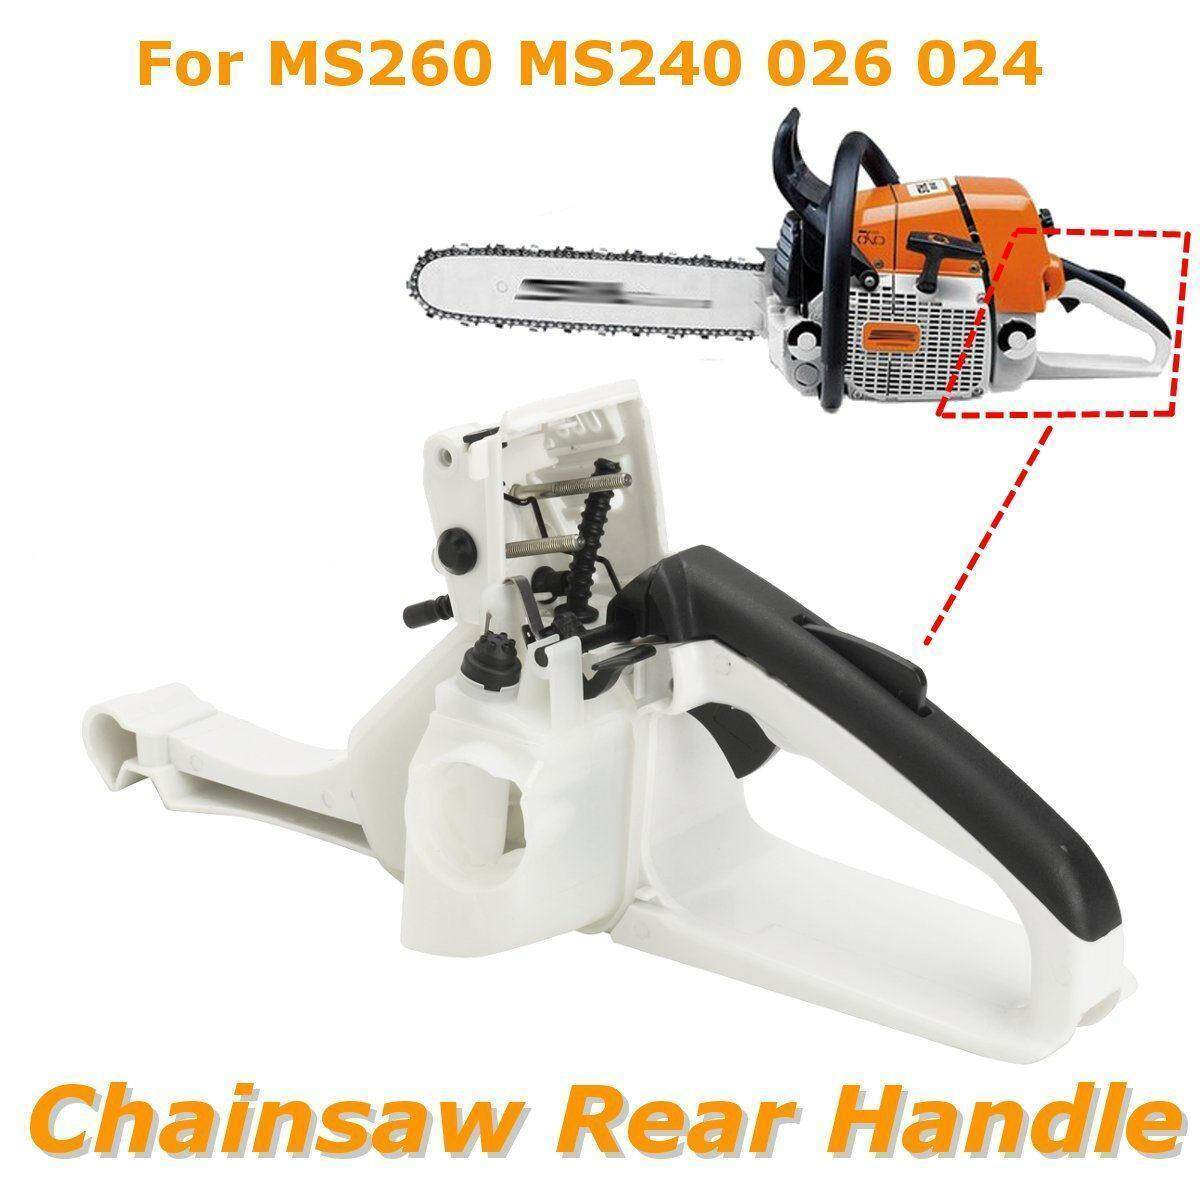 Fuel Gas Tank Back Rear Handle For Stihl Ms260 Ms240 026 Chainsaw 1121 350 0829